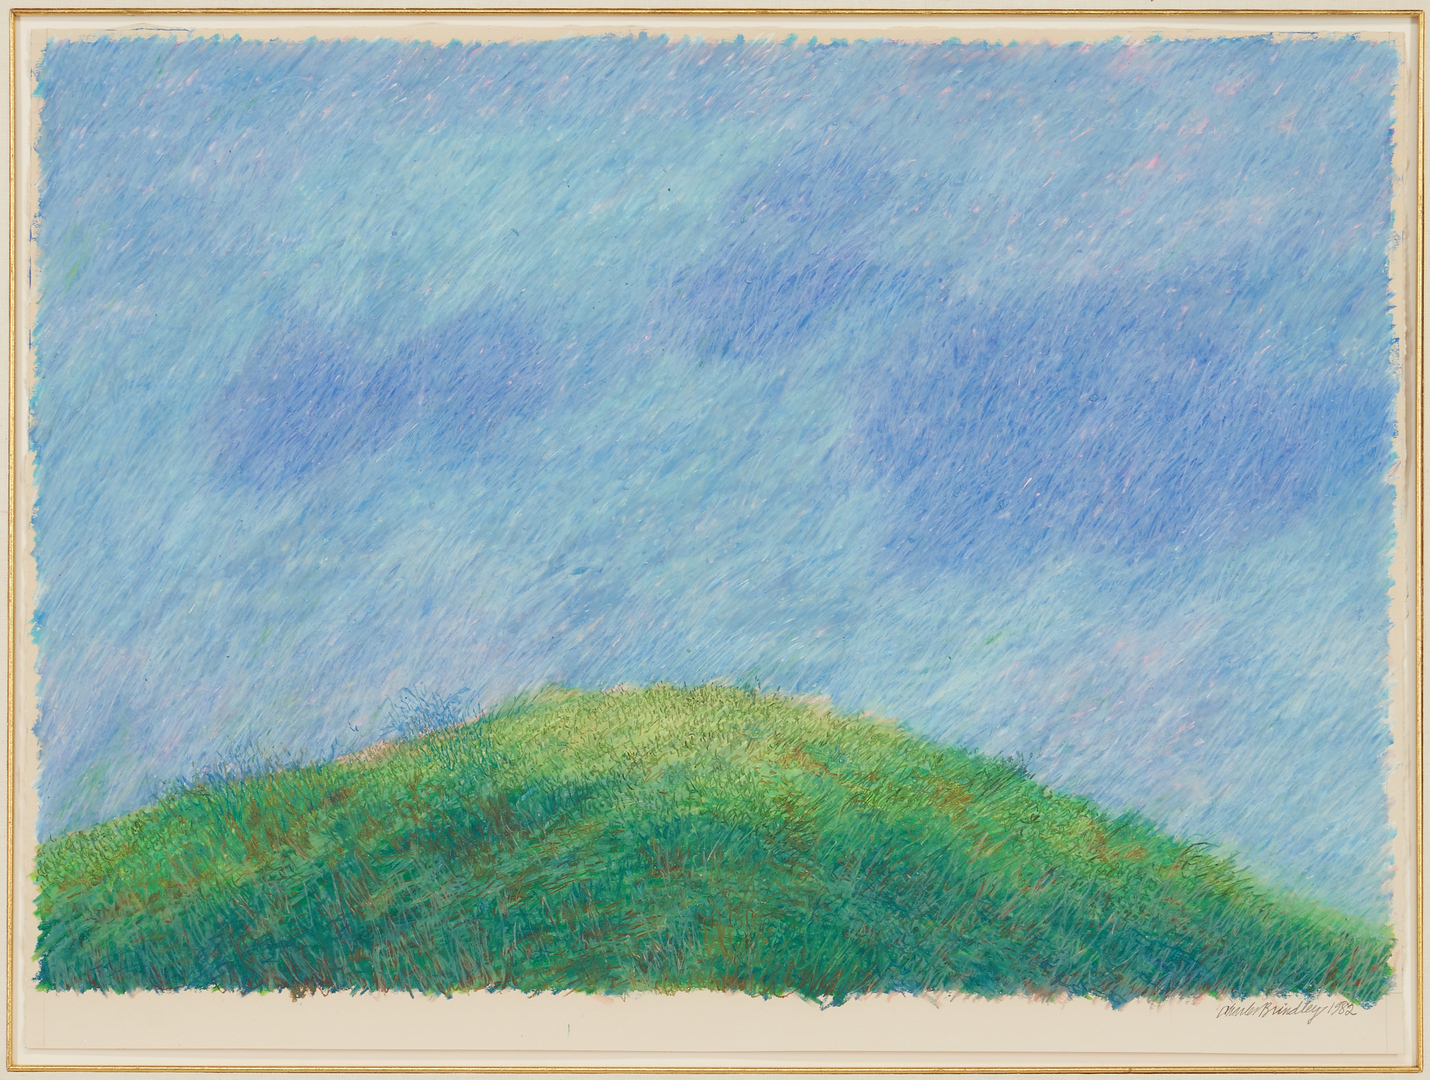 Lot 576: Charles Brindley Oil on Paper, Mound Study